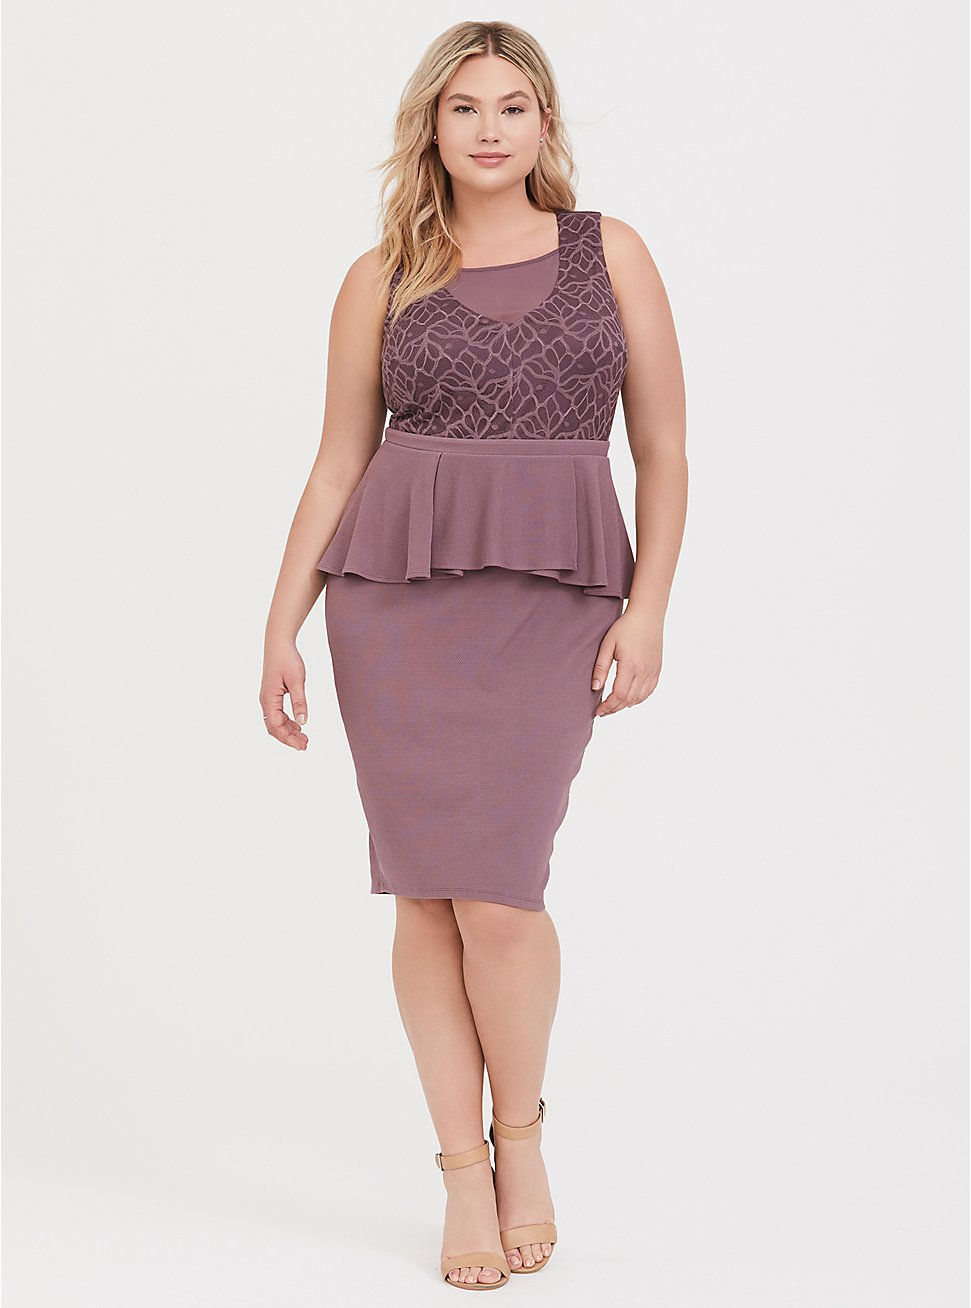 Mauve Purple Textured Scuba & Lace Peplum Dress